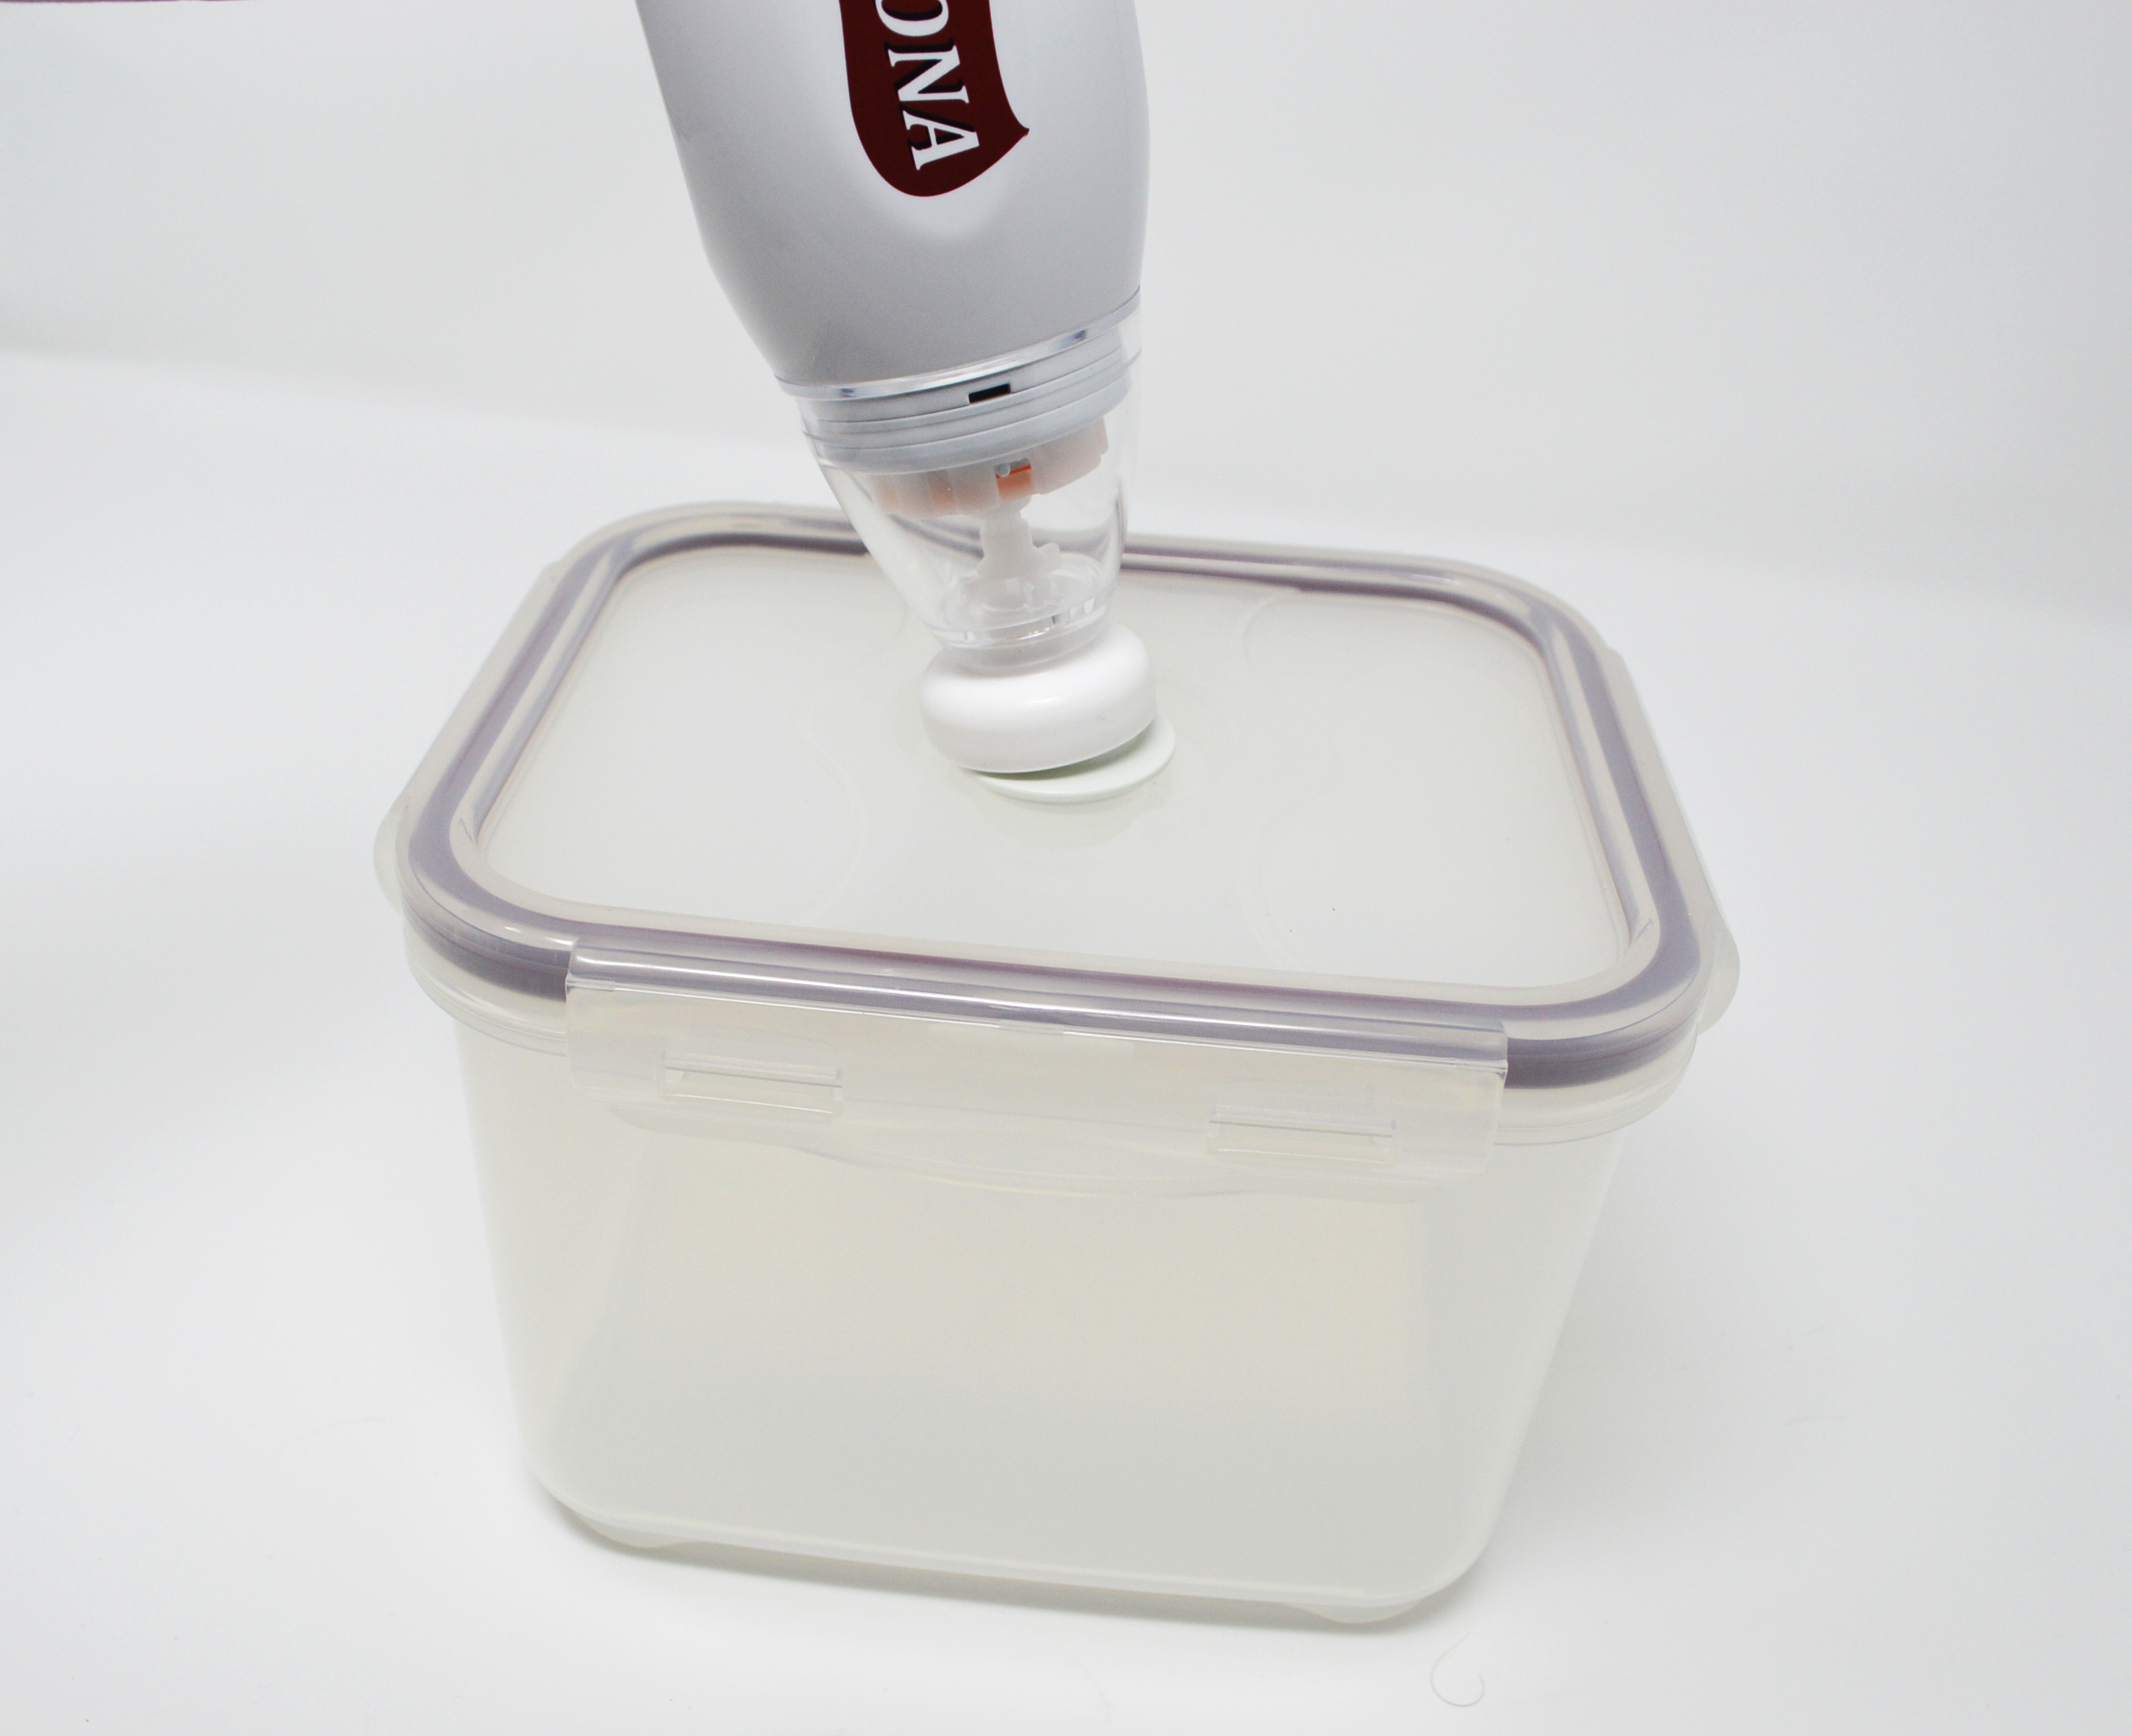 Icona Handheld Food Vacuum Sealer Must come with at least one Icona Handheld Vacuum Food Container Product Dimensions 2.5 x 2.5 x 10 inches Item Weight 8.8 ounces Shipping Weight Domestic Shipping Item can be shipped within U.S. International Shipping This item can be shipped to select countries outside of the U.S. Item model number VH-500